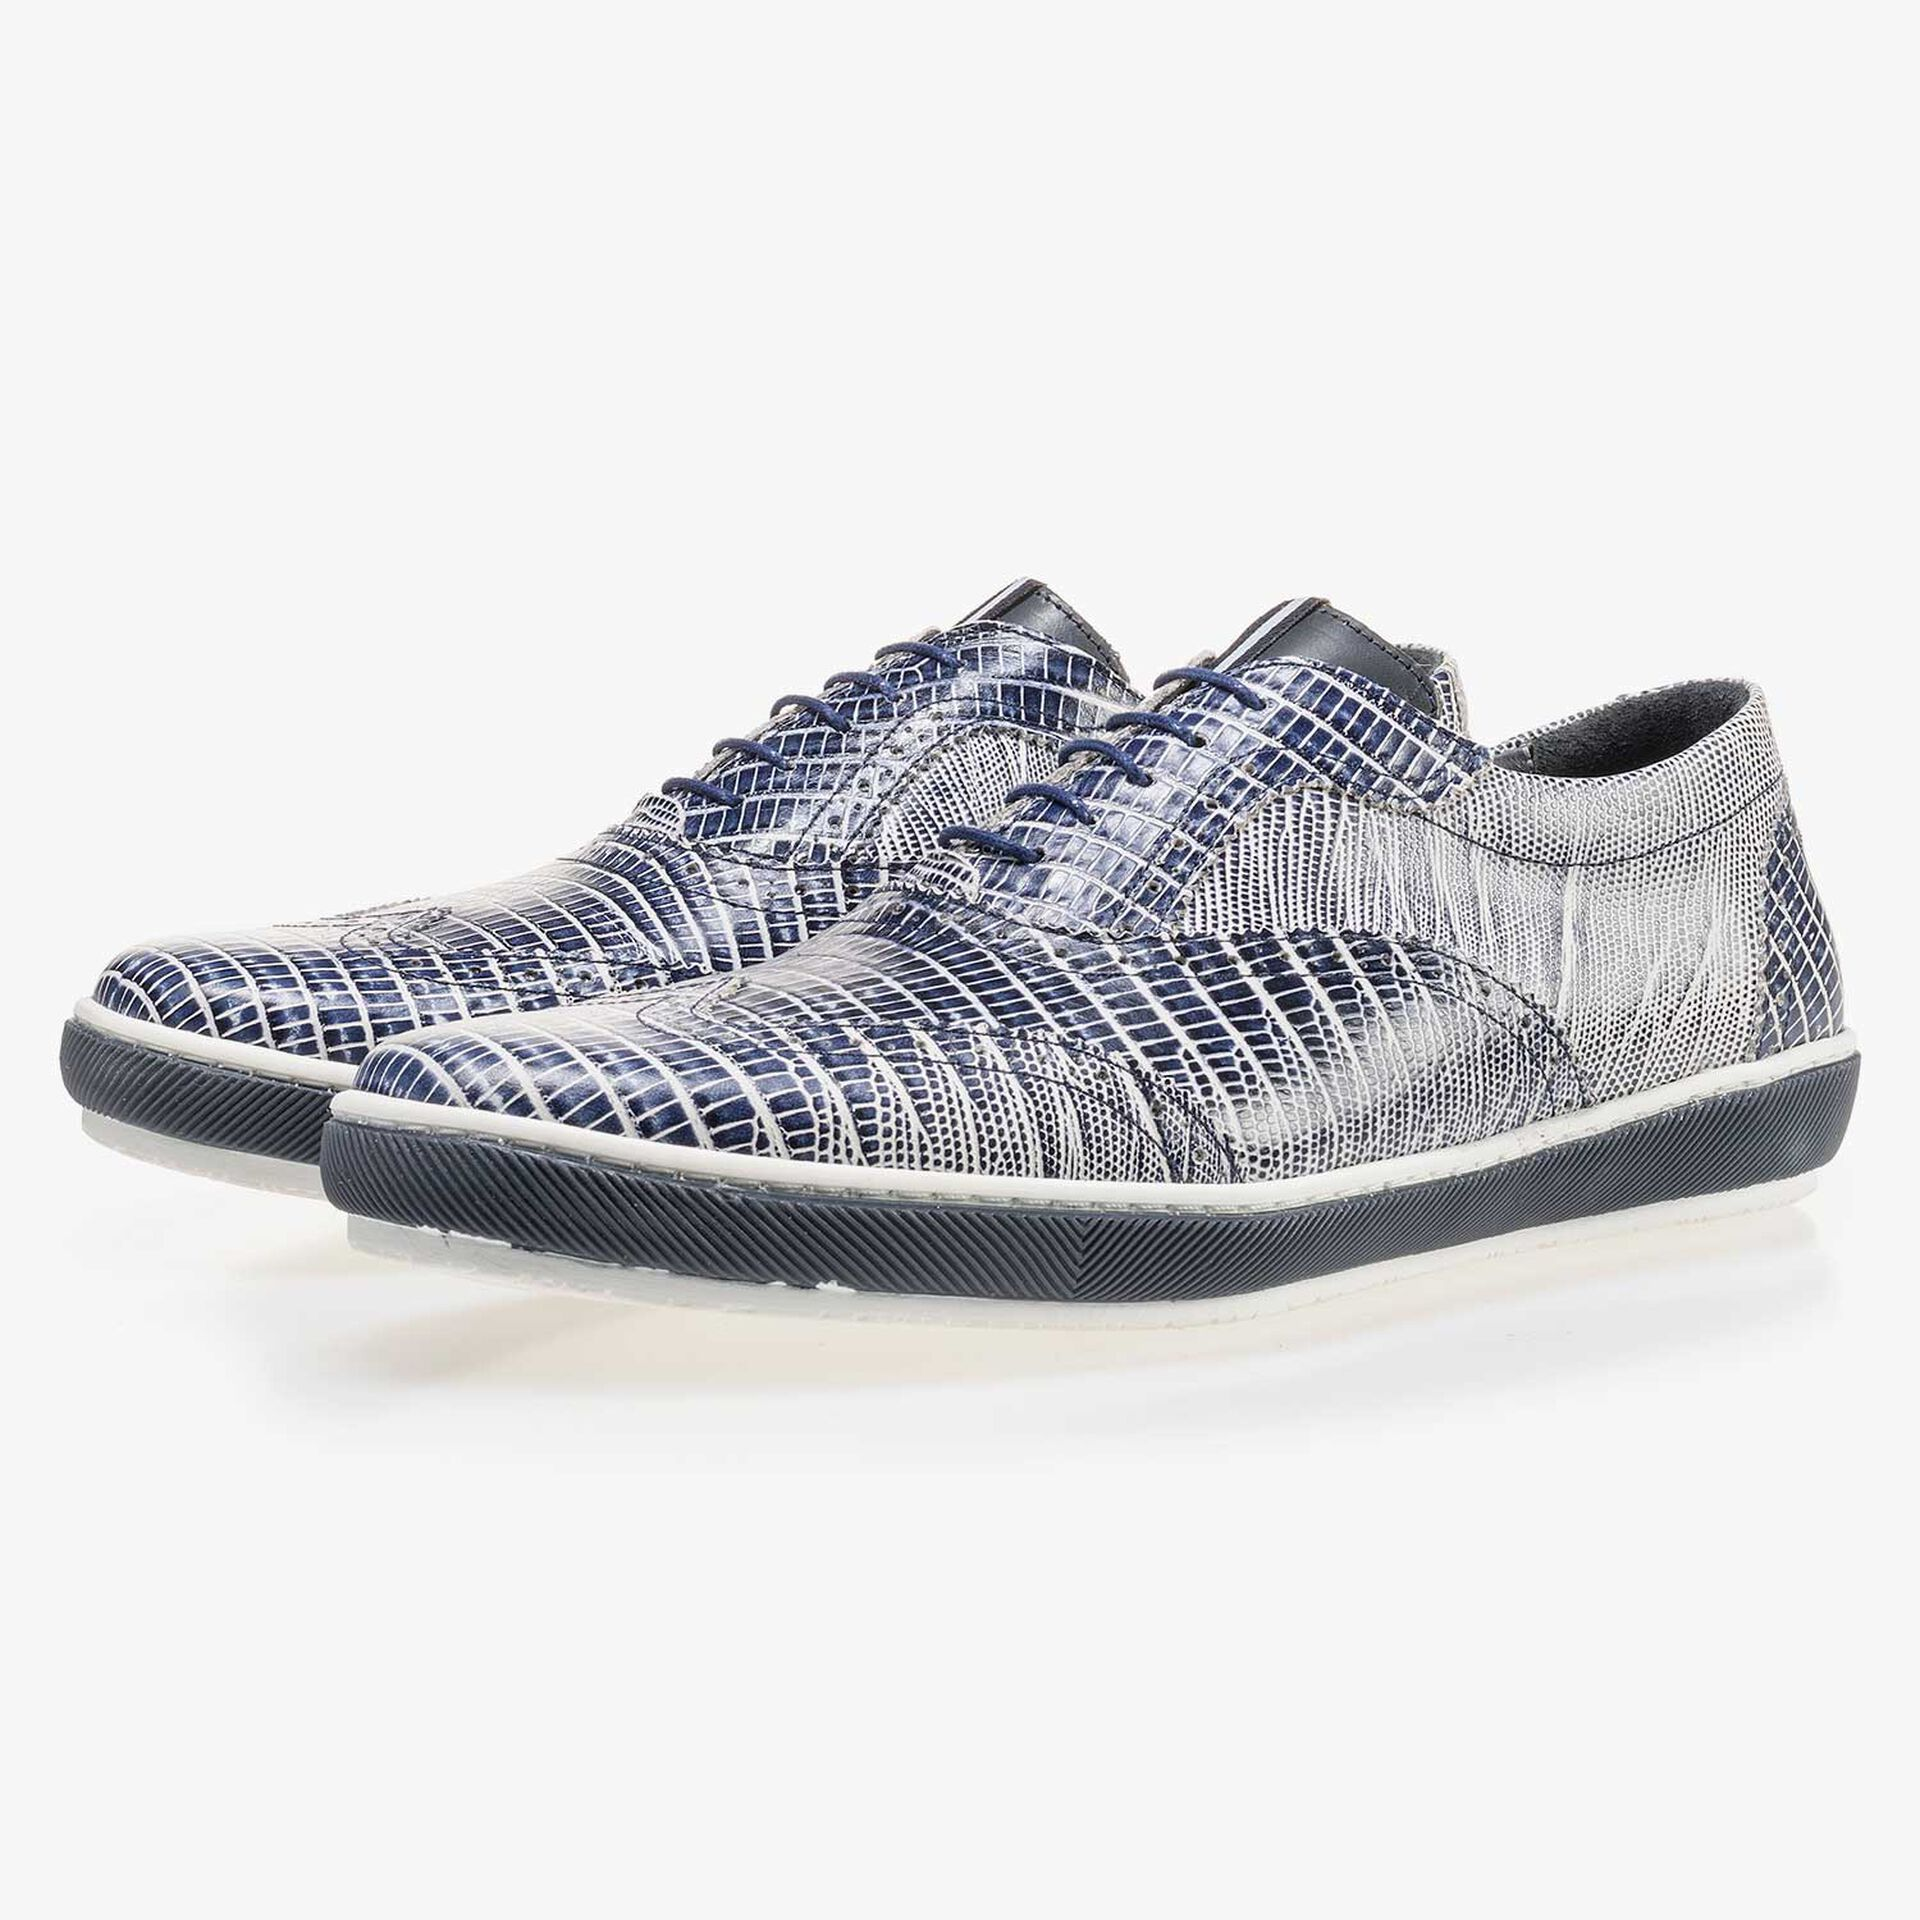 Blue leather sneaker with a lizard print